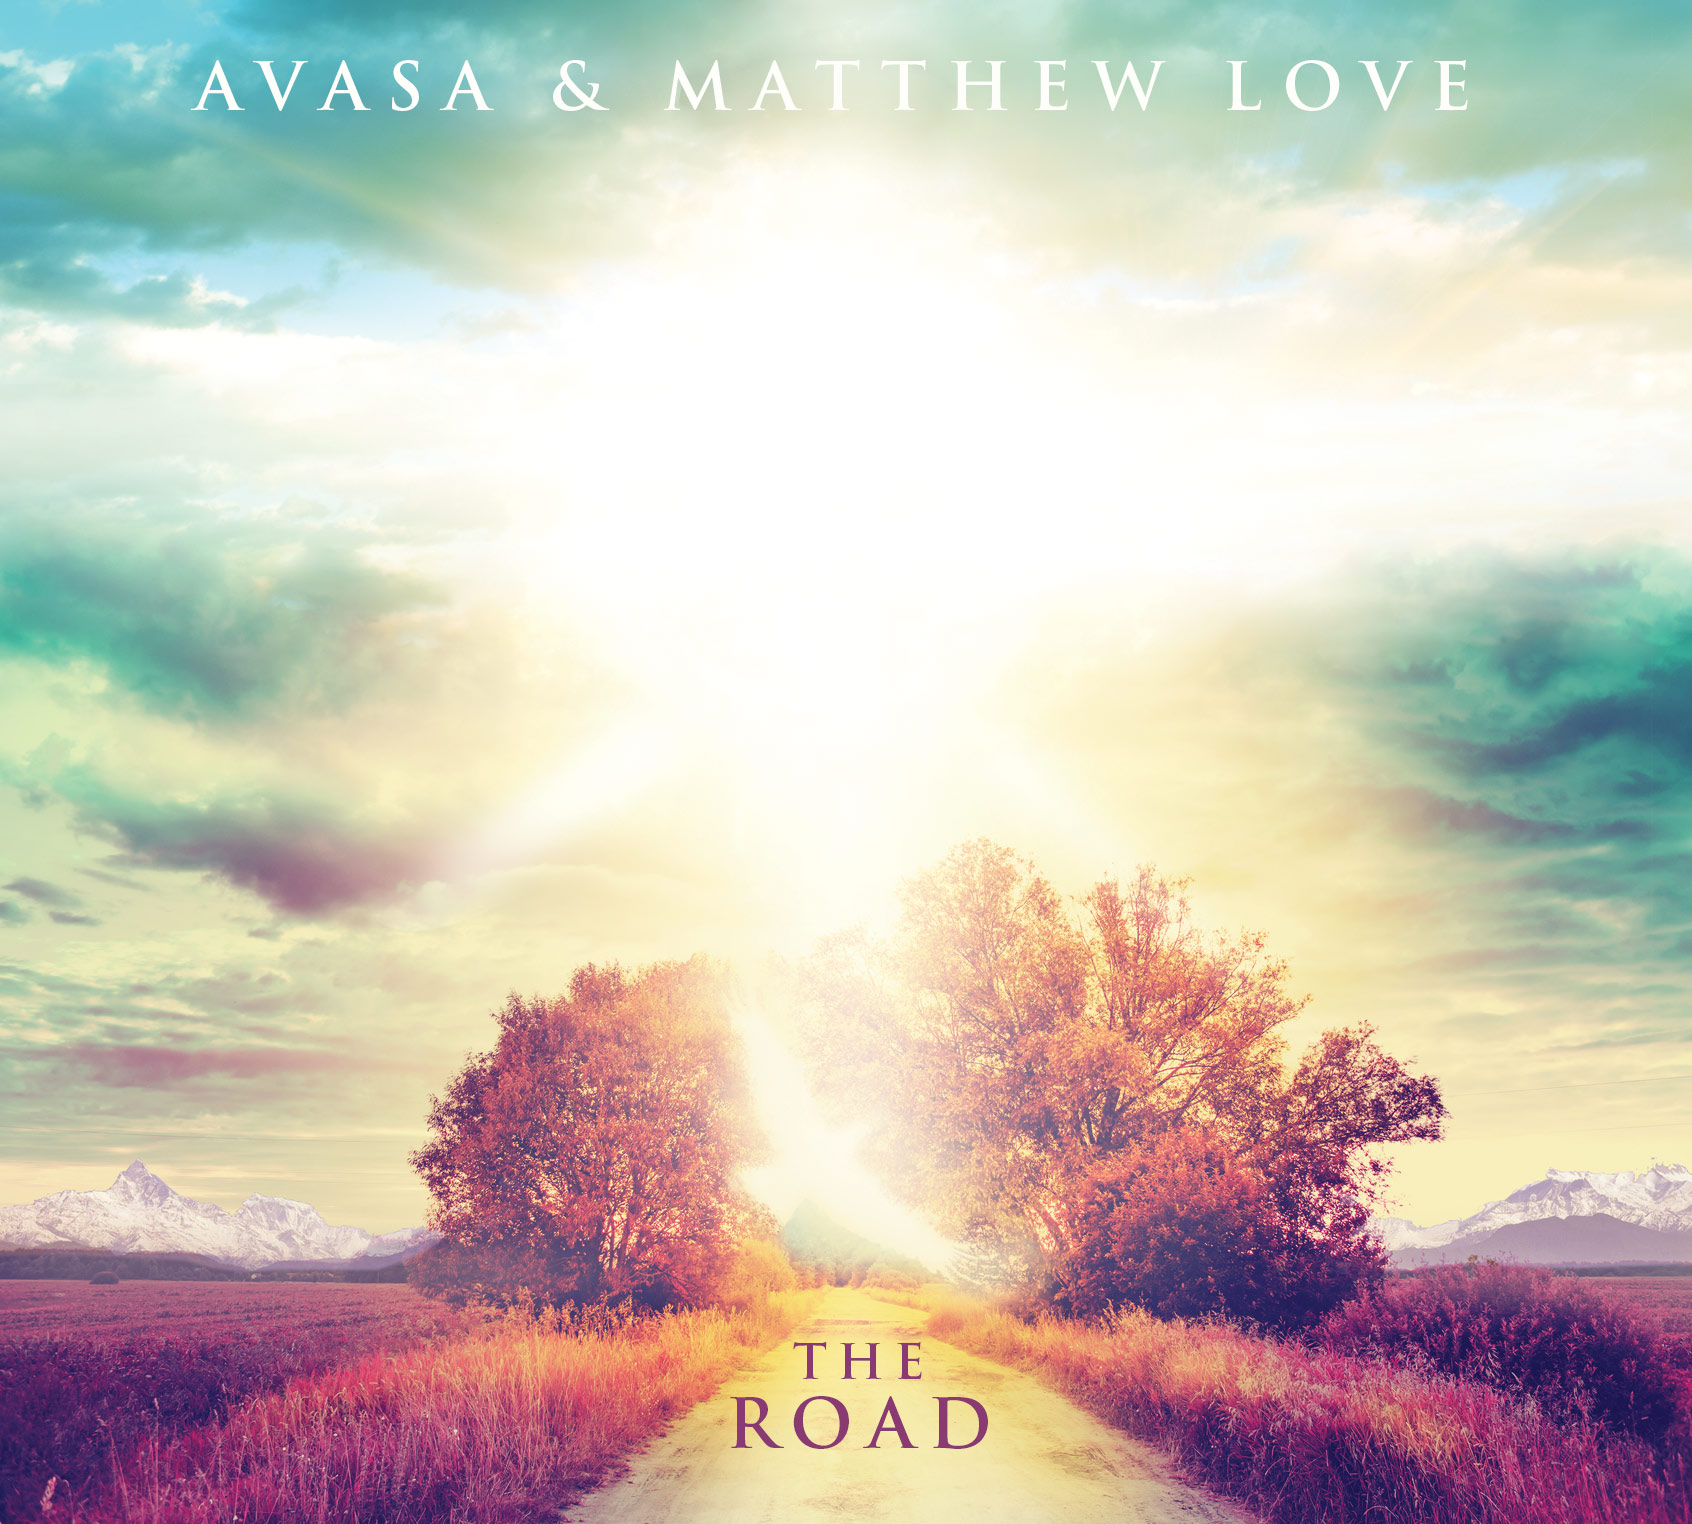 Avasa & Matthew Love: The Road